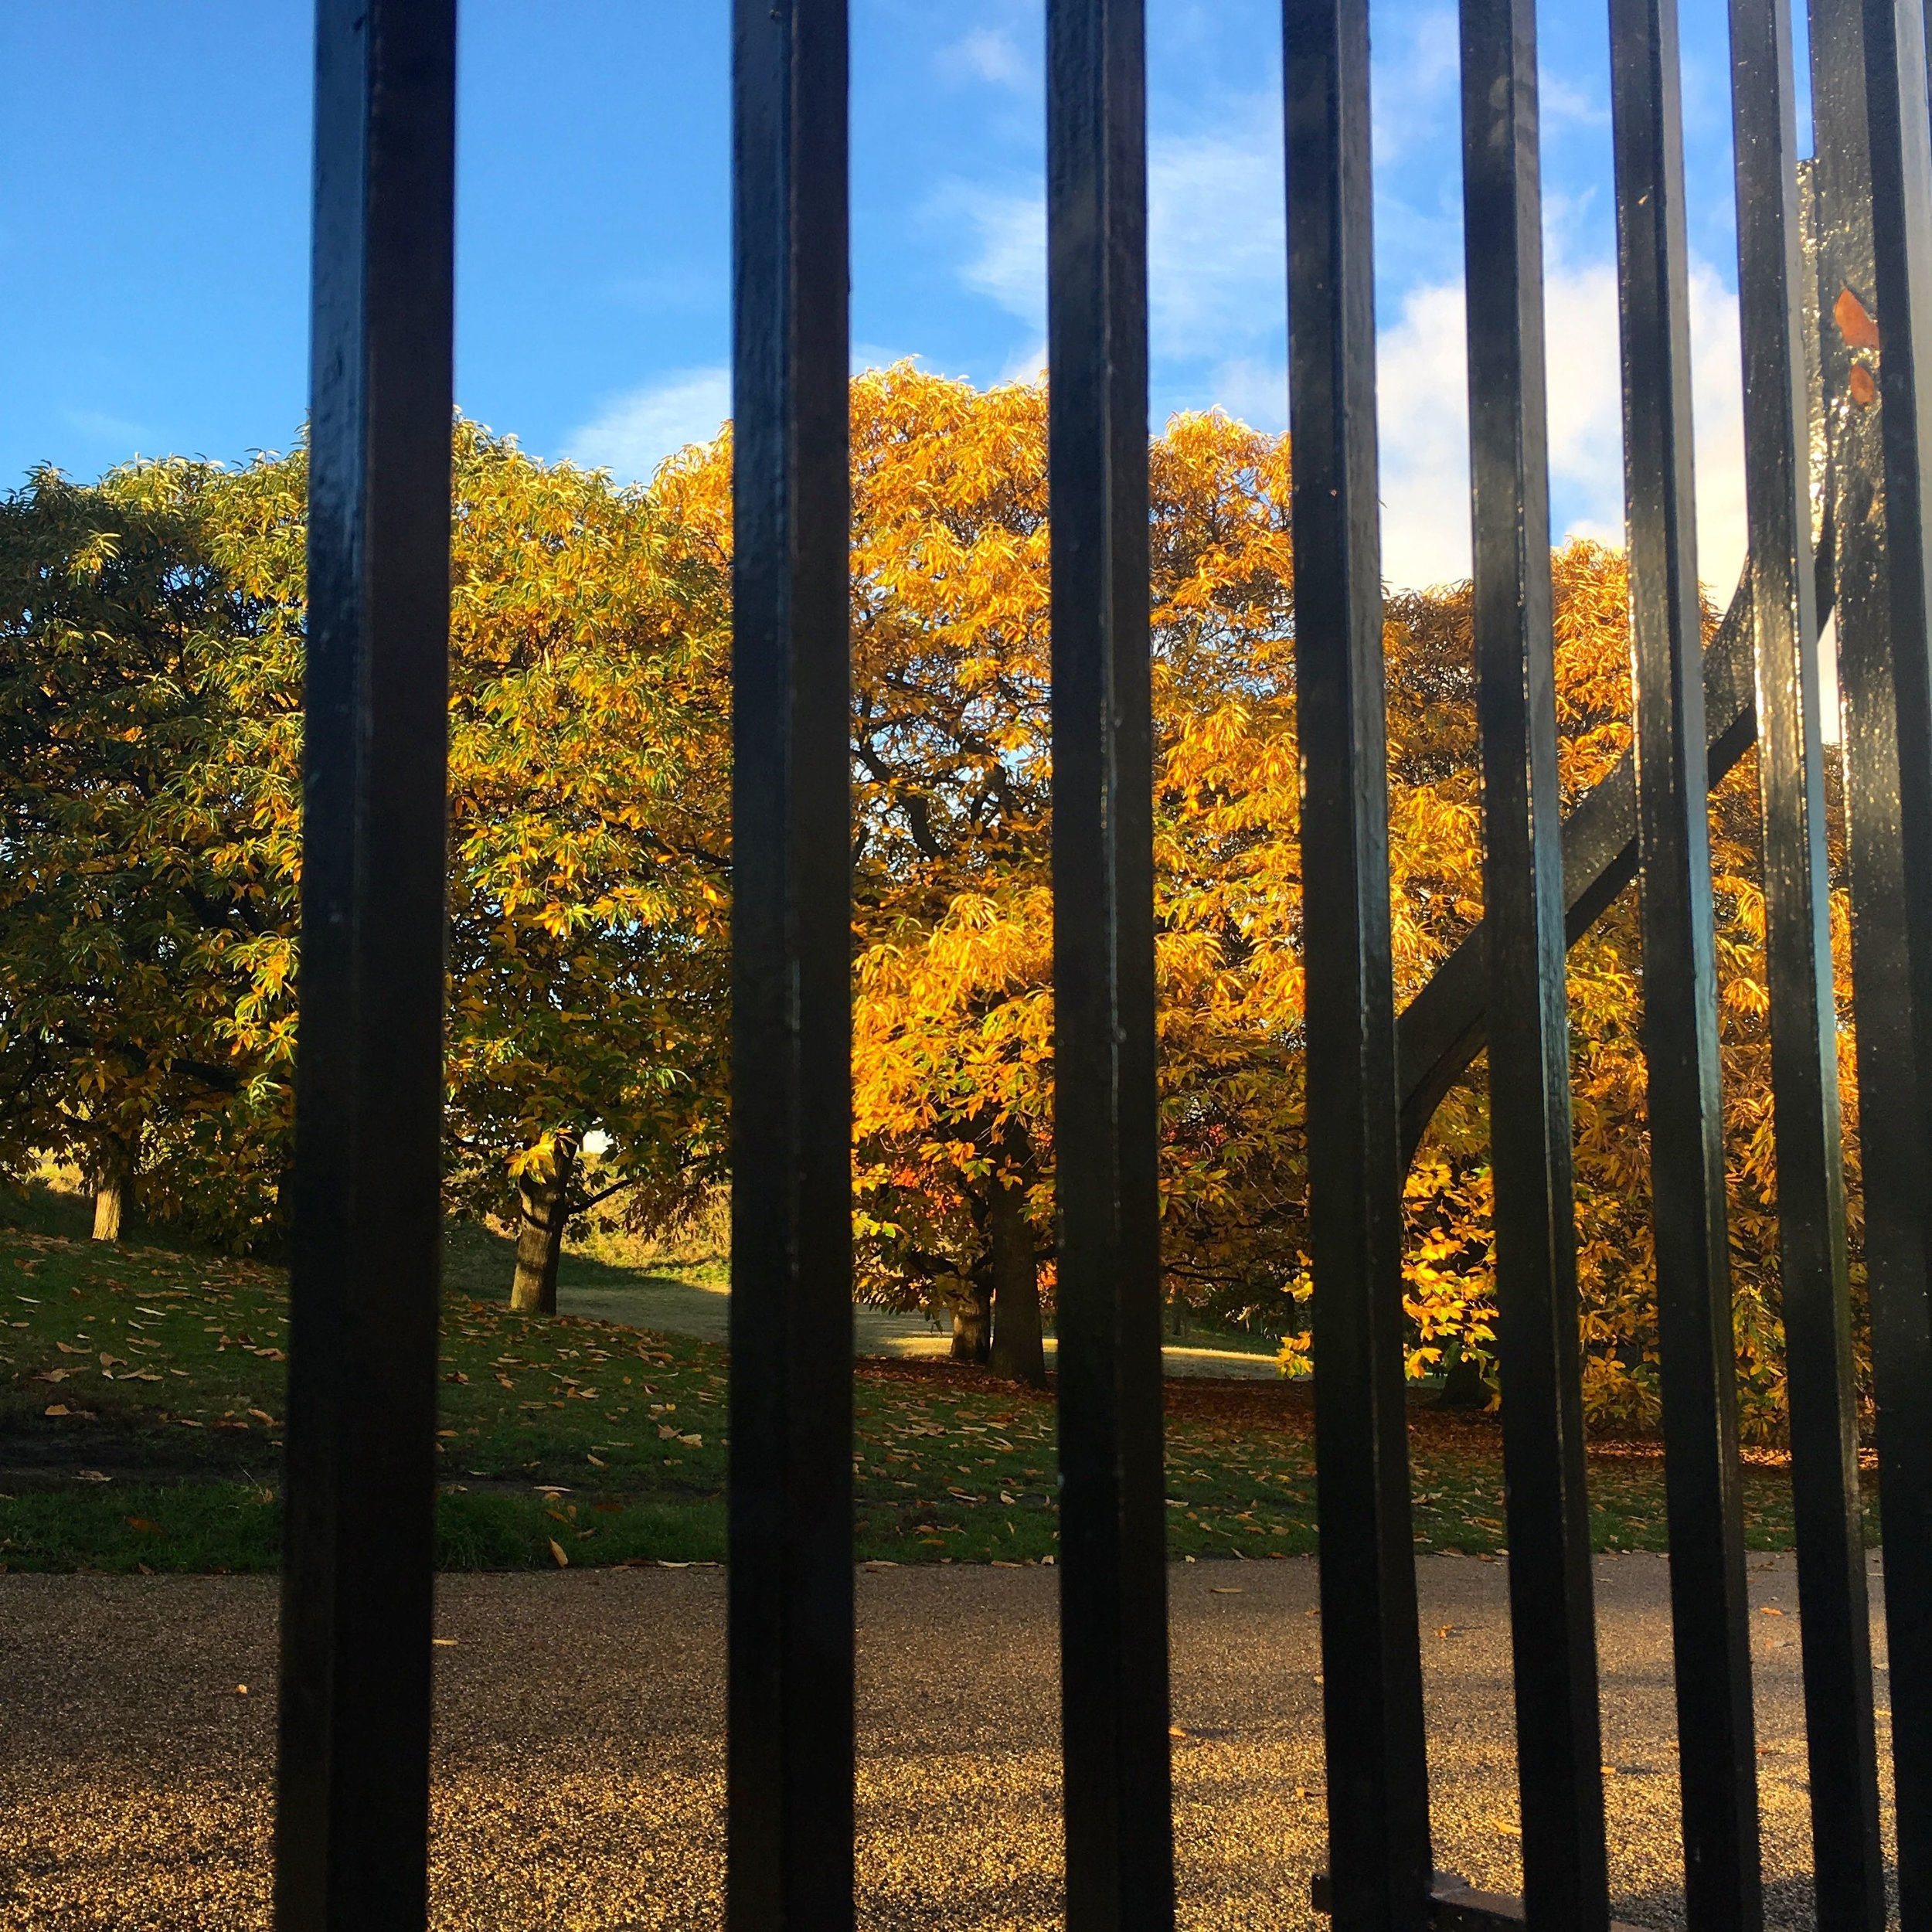 a different view of greenwich park, this time from the street and through the railings